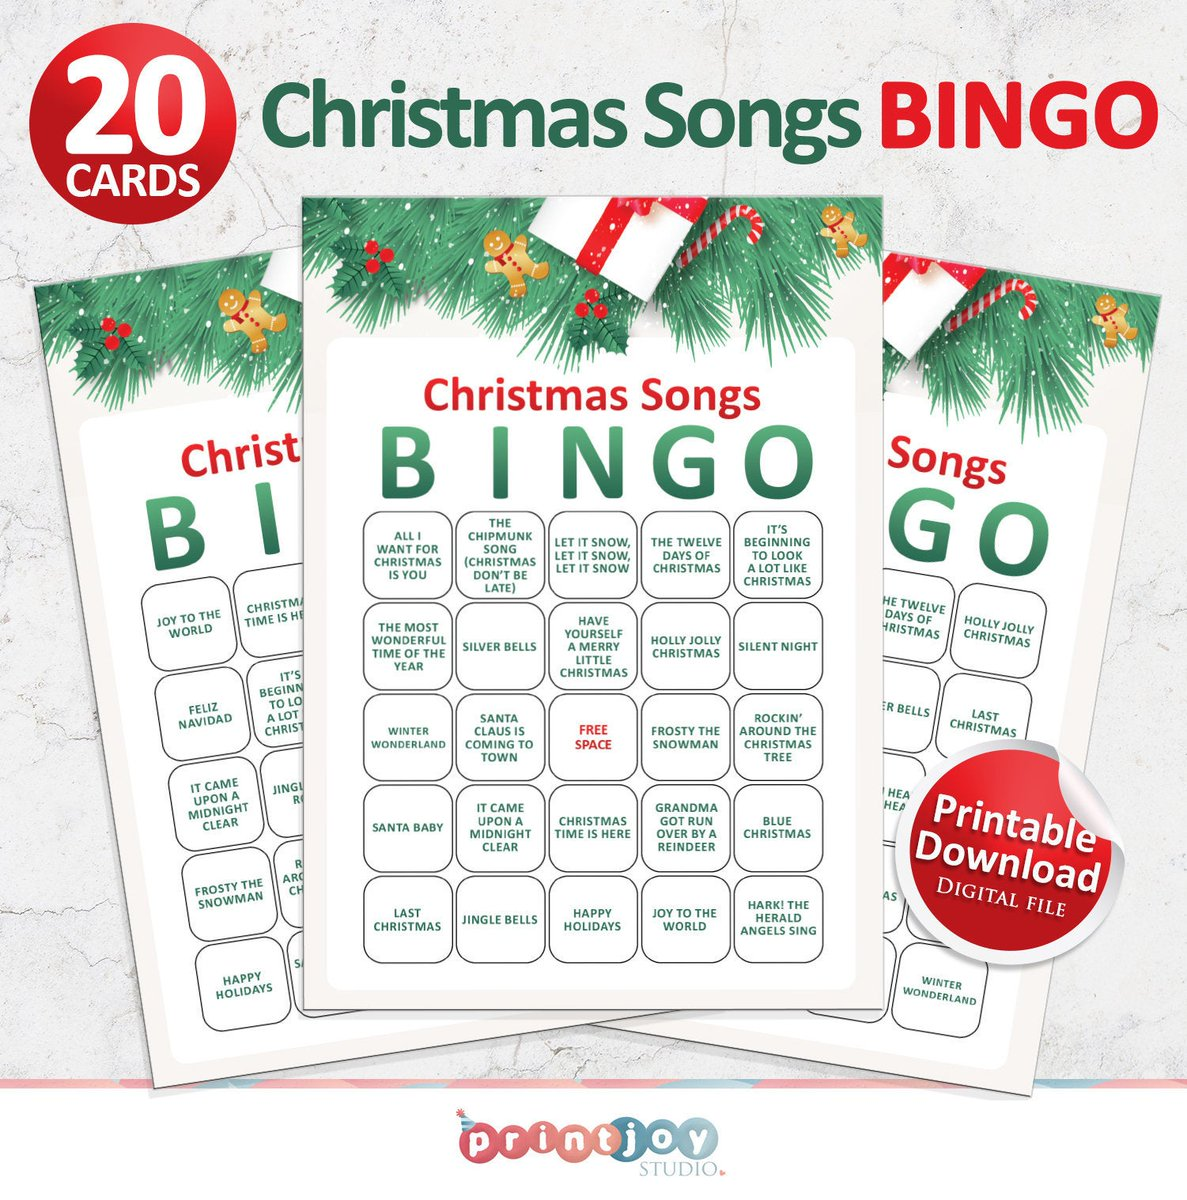 This is a printable Christmas Songs BINGO game to play with family and friends so you can start the Christmas cheer! 🎄 You can instantly purchase and download this game set in our Etsy shop! 👉 https://t.co/MVaQHLKFdn   | #Christmas #ChristmasGames #Bingo https://t.co/ofpERzUDJ7